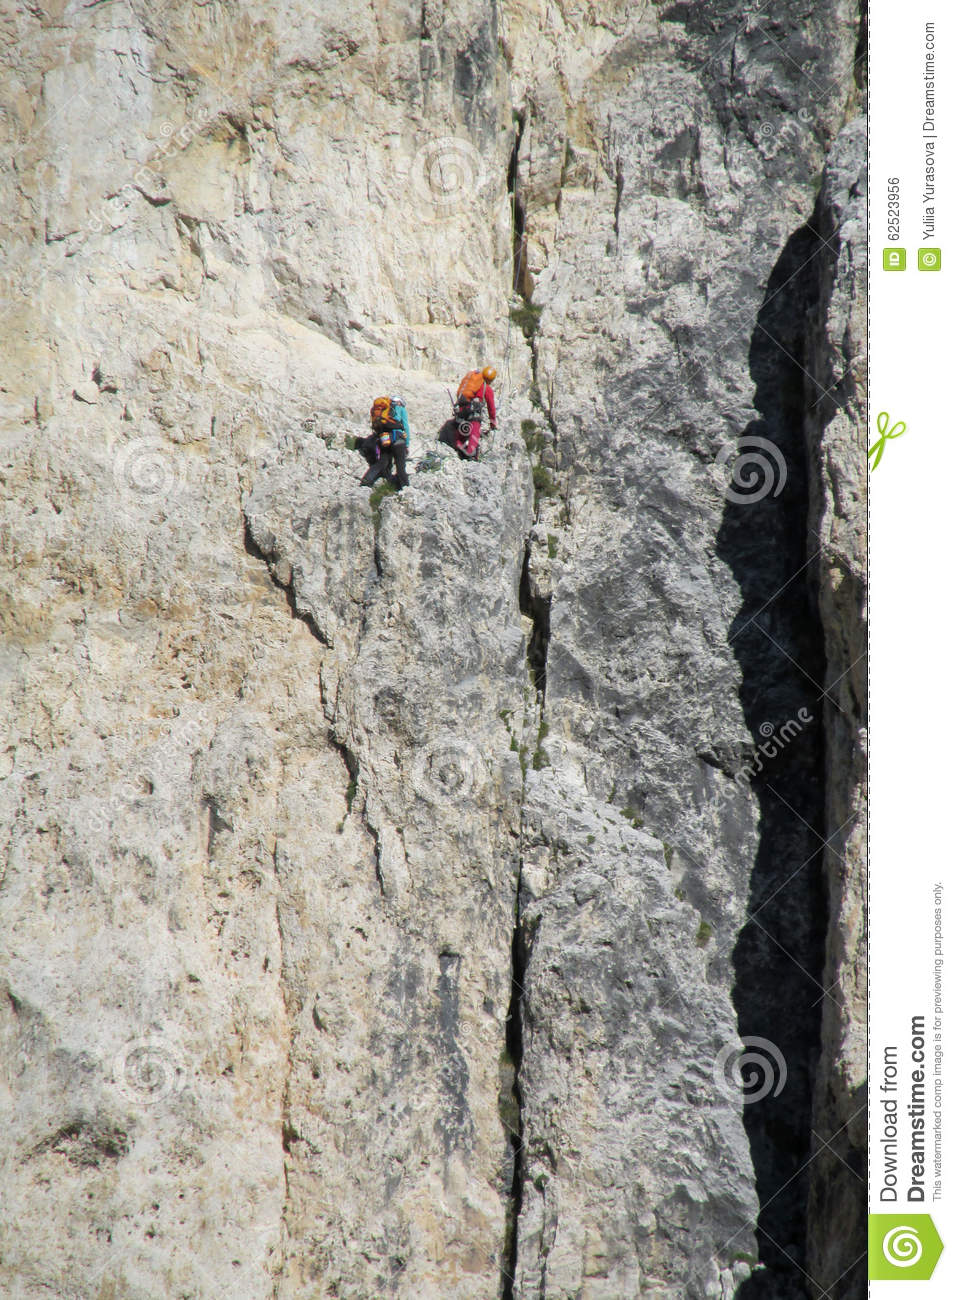 Two climbers on dangerous alpinist route